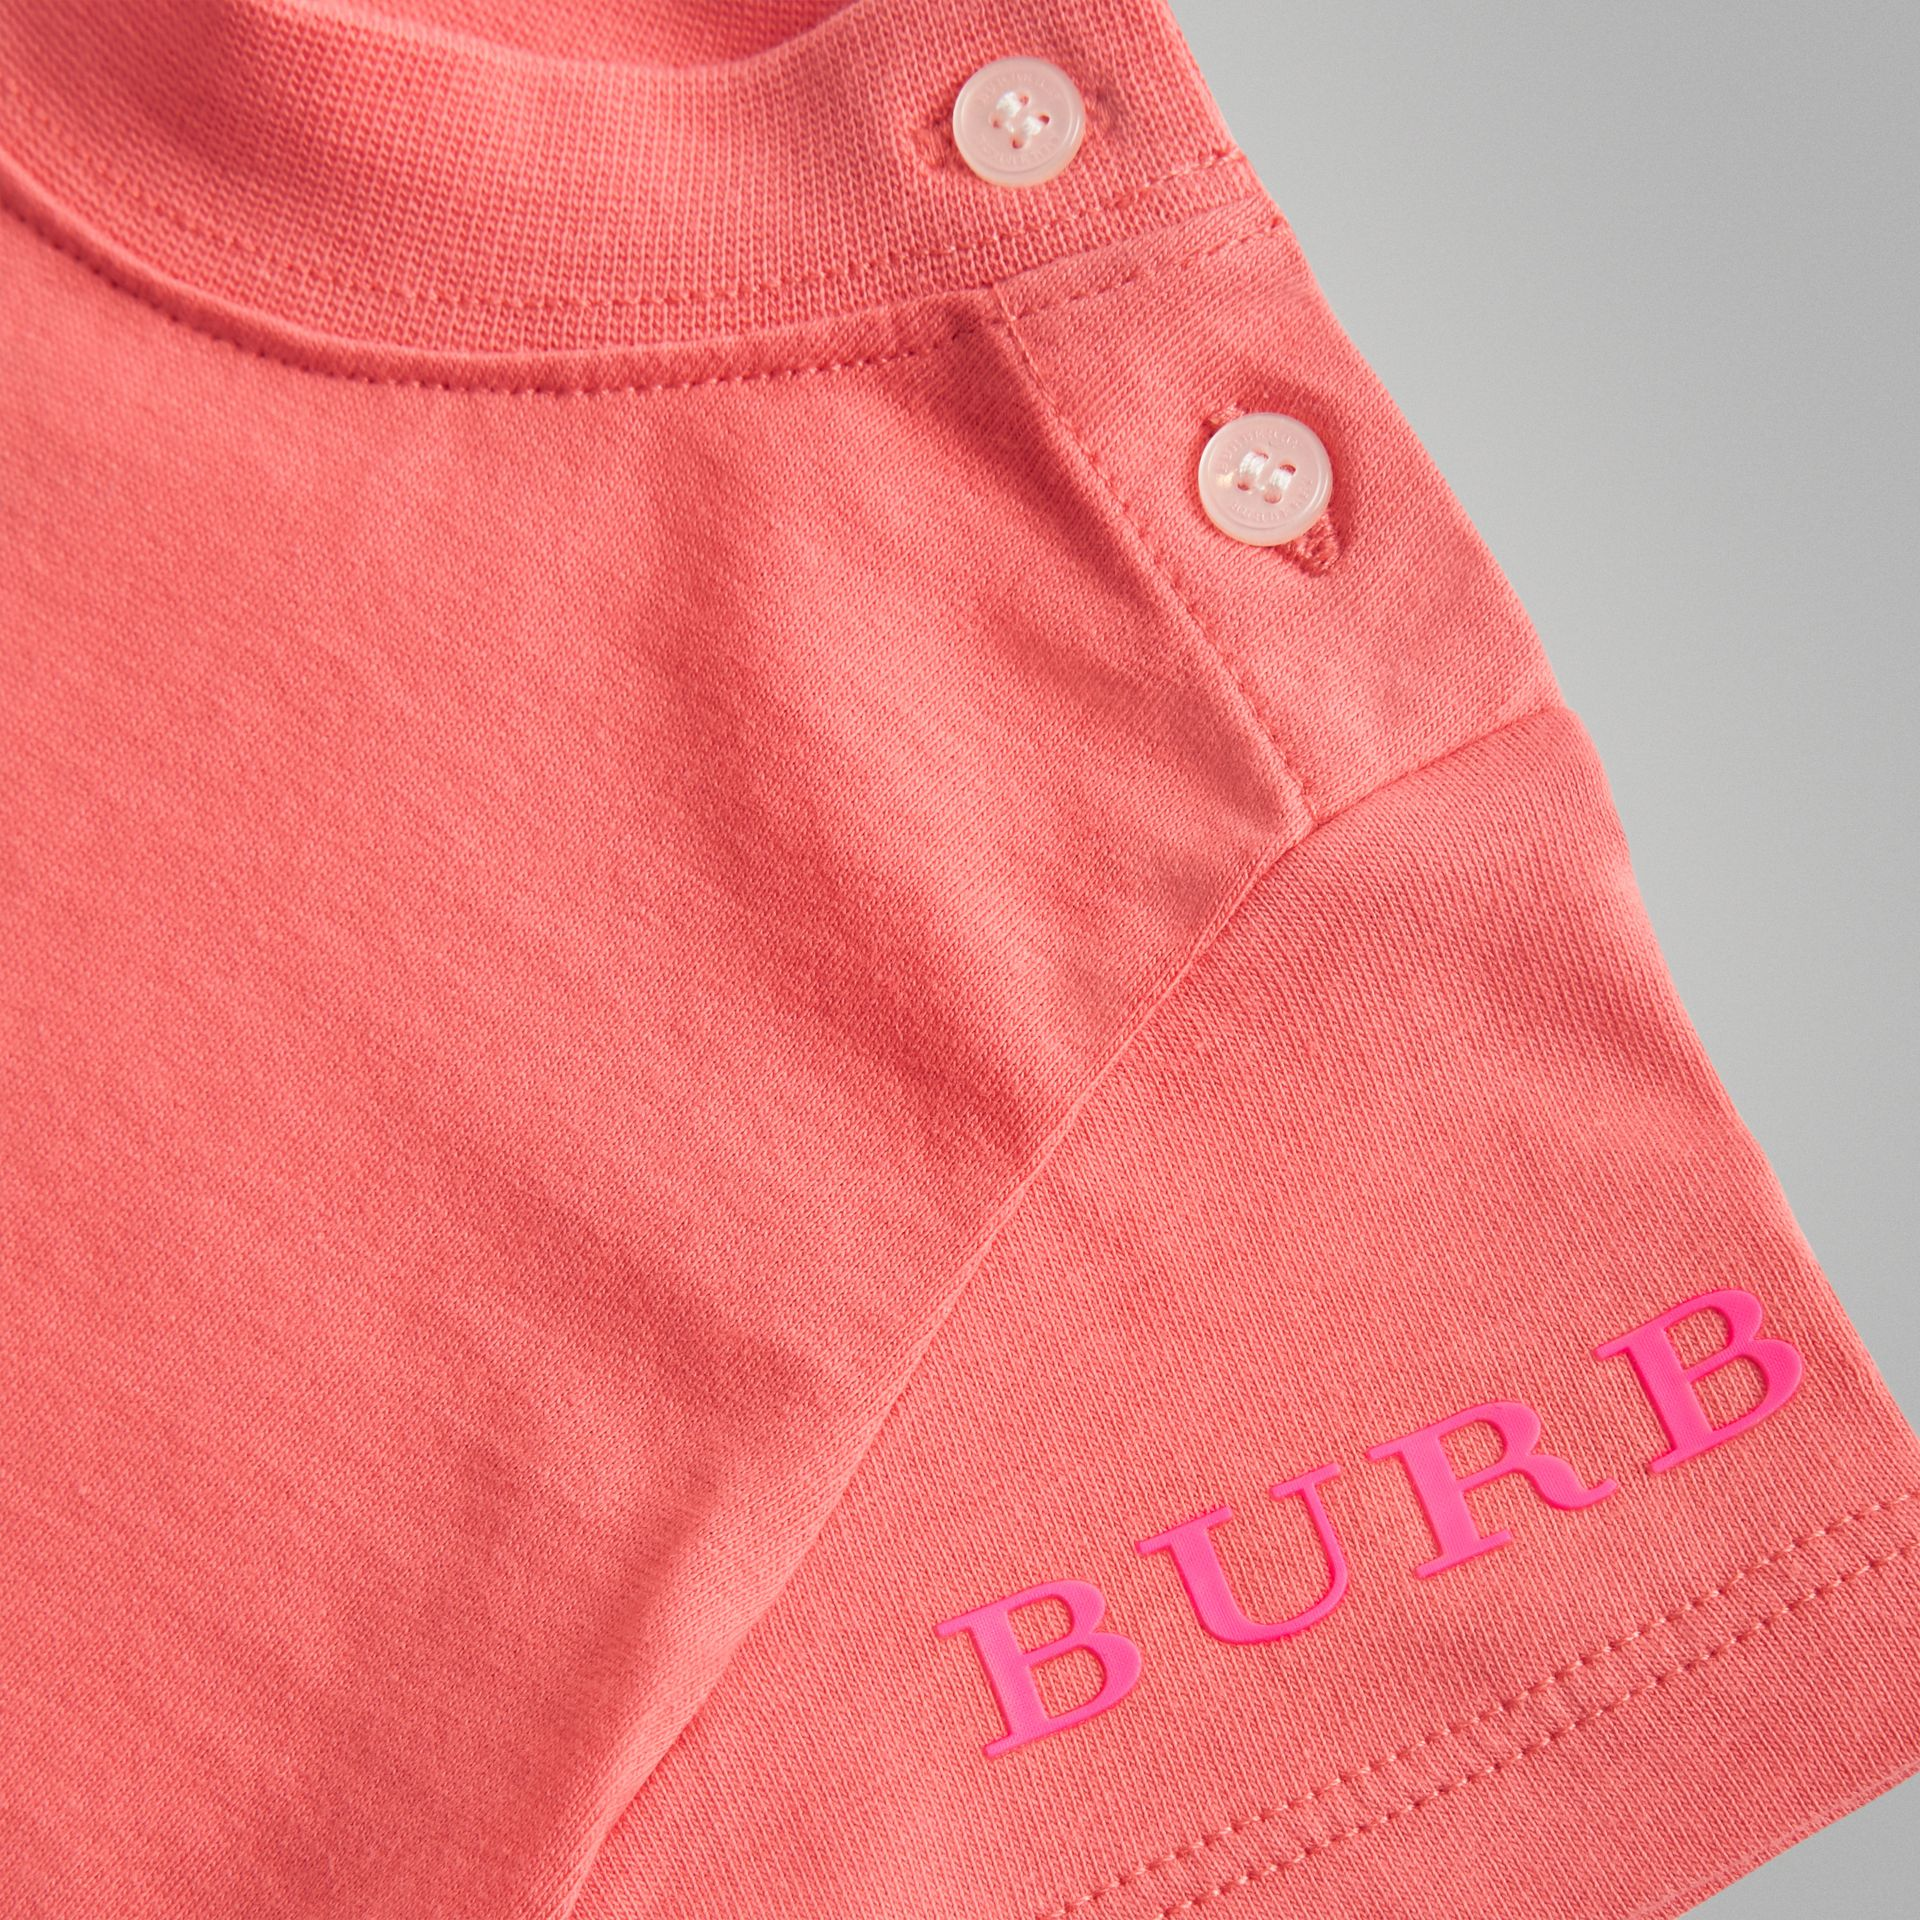 Logo Print Cotton T-shirt in Bright Pink - Children | Burberry - gallery image 1